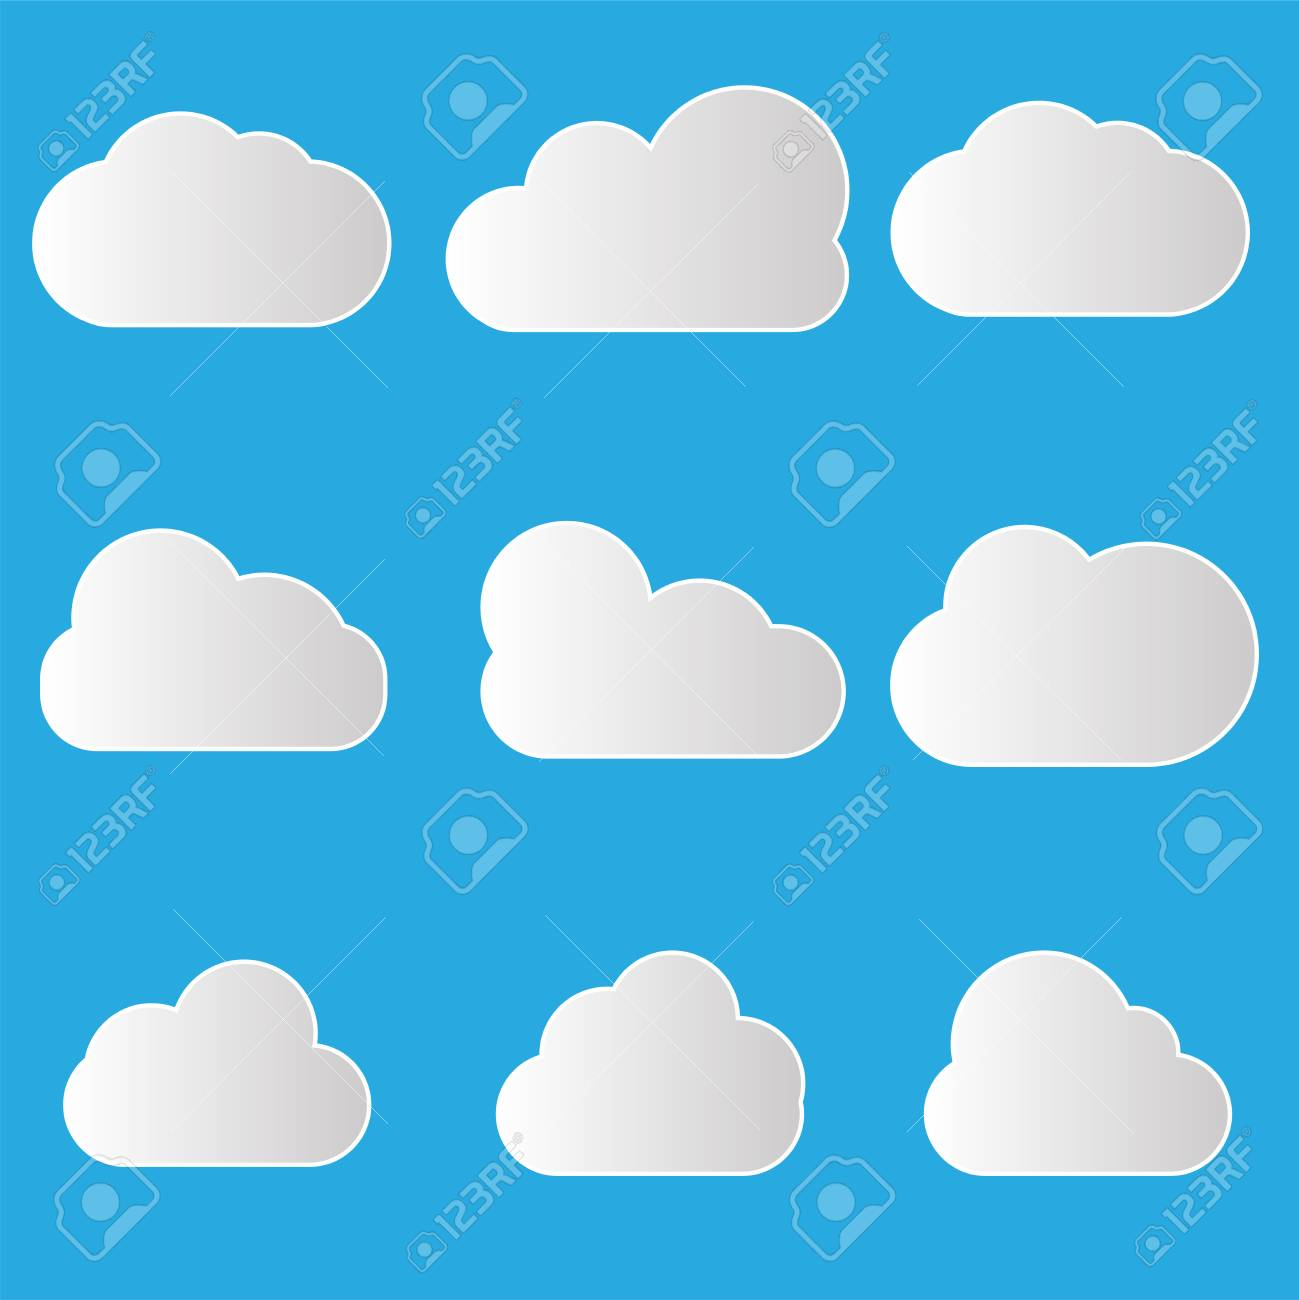 Set Of Cloud Icons In Trendy Flat Style On Blue Background Cloud